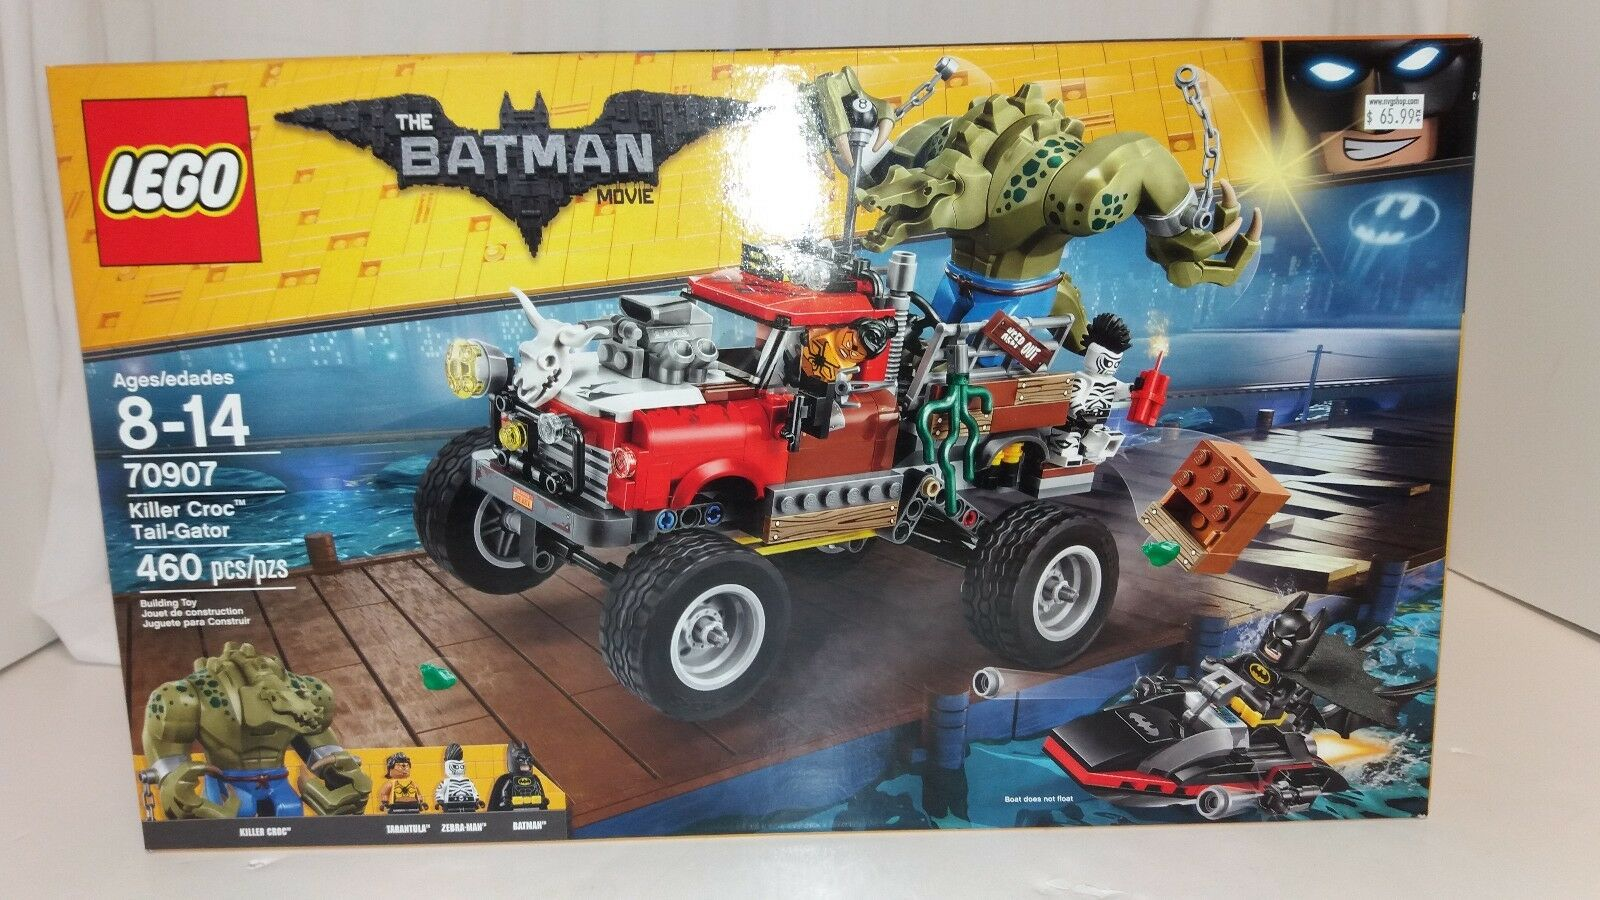 Lego Batman Movie Killer Croc Tail-Gator 460pc Set NEW    70907 Tarantula Zebra.